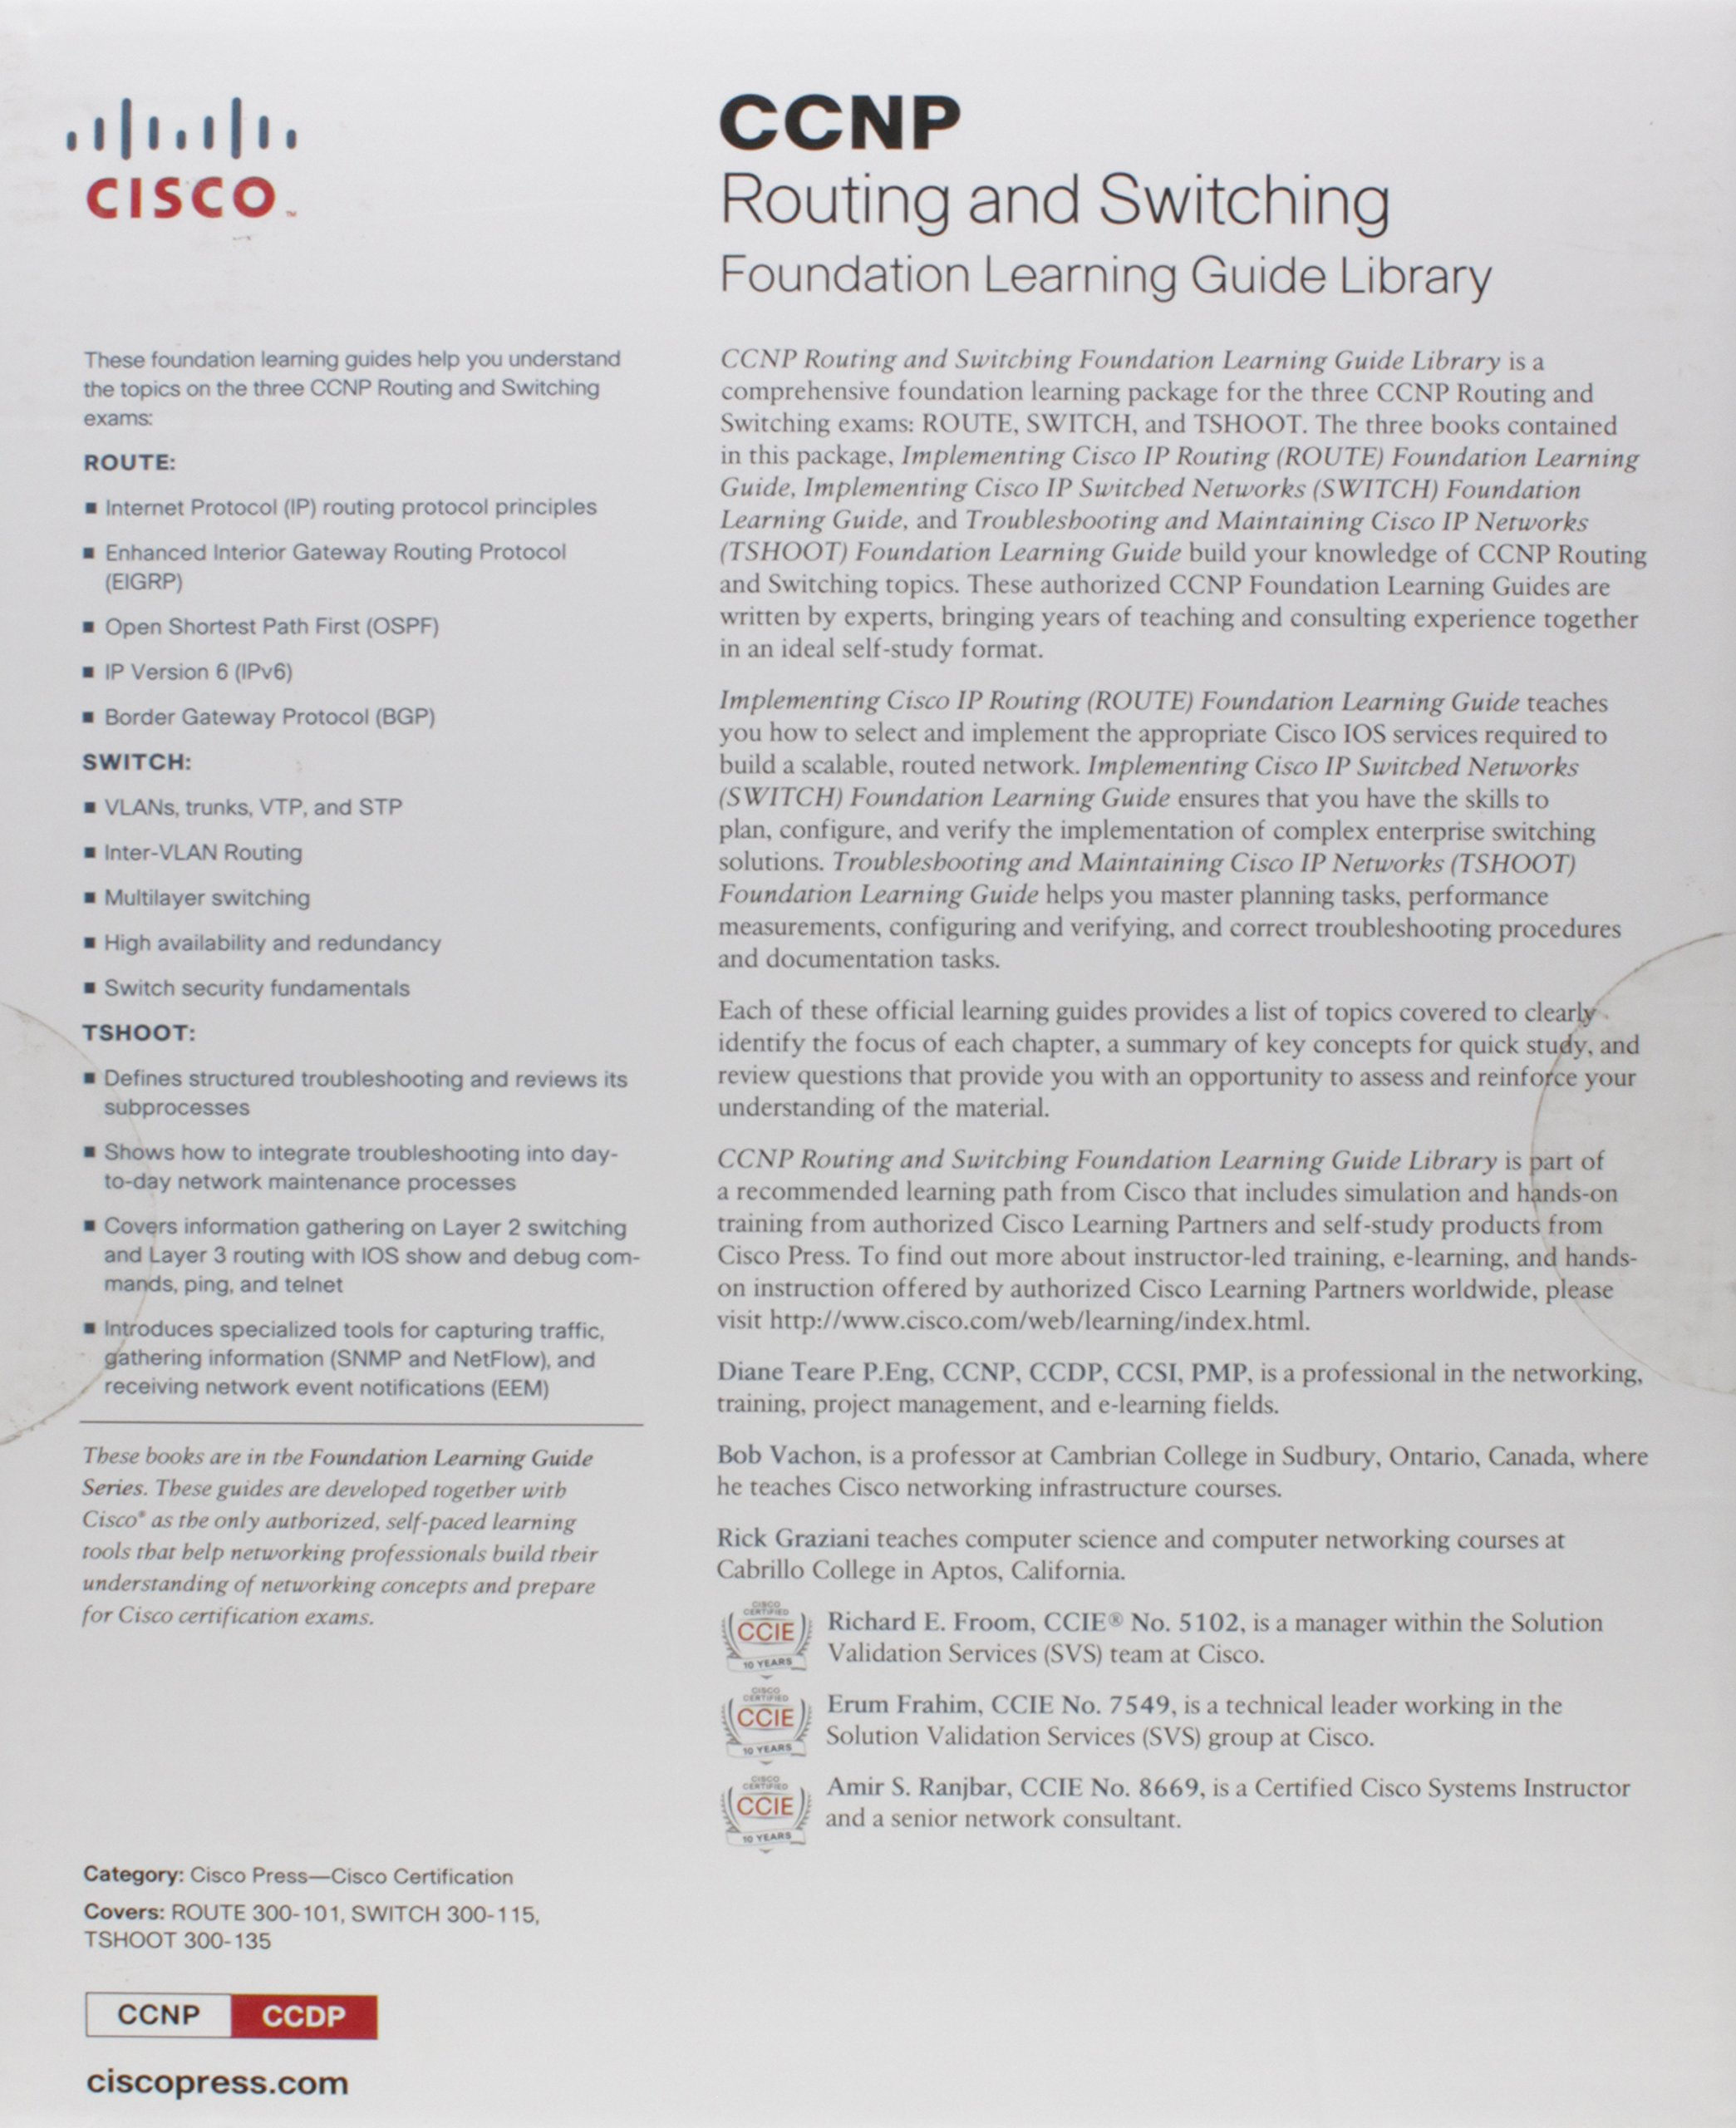 Ccnp routing and switching foundation learning guide library ccnp routing and switching foundation learning guide library route 300 101 switch 300 115 tshoot 300 135 self study guide amazon diane teare 1betcityfo Choice Image